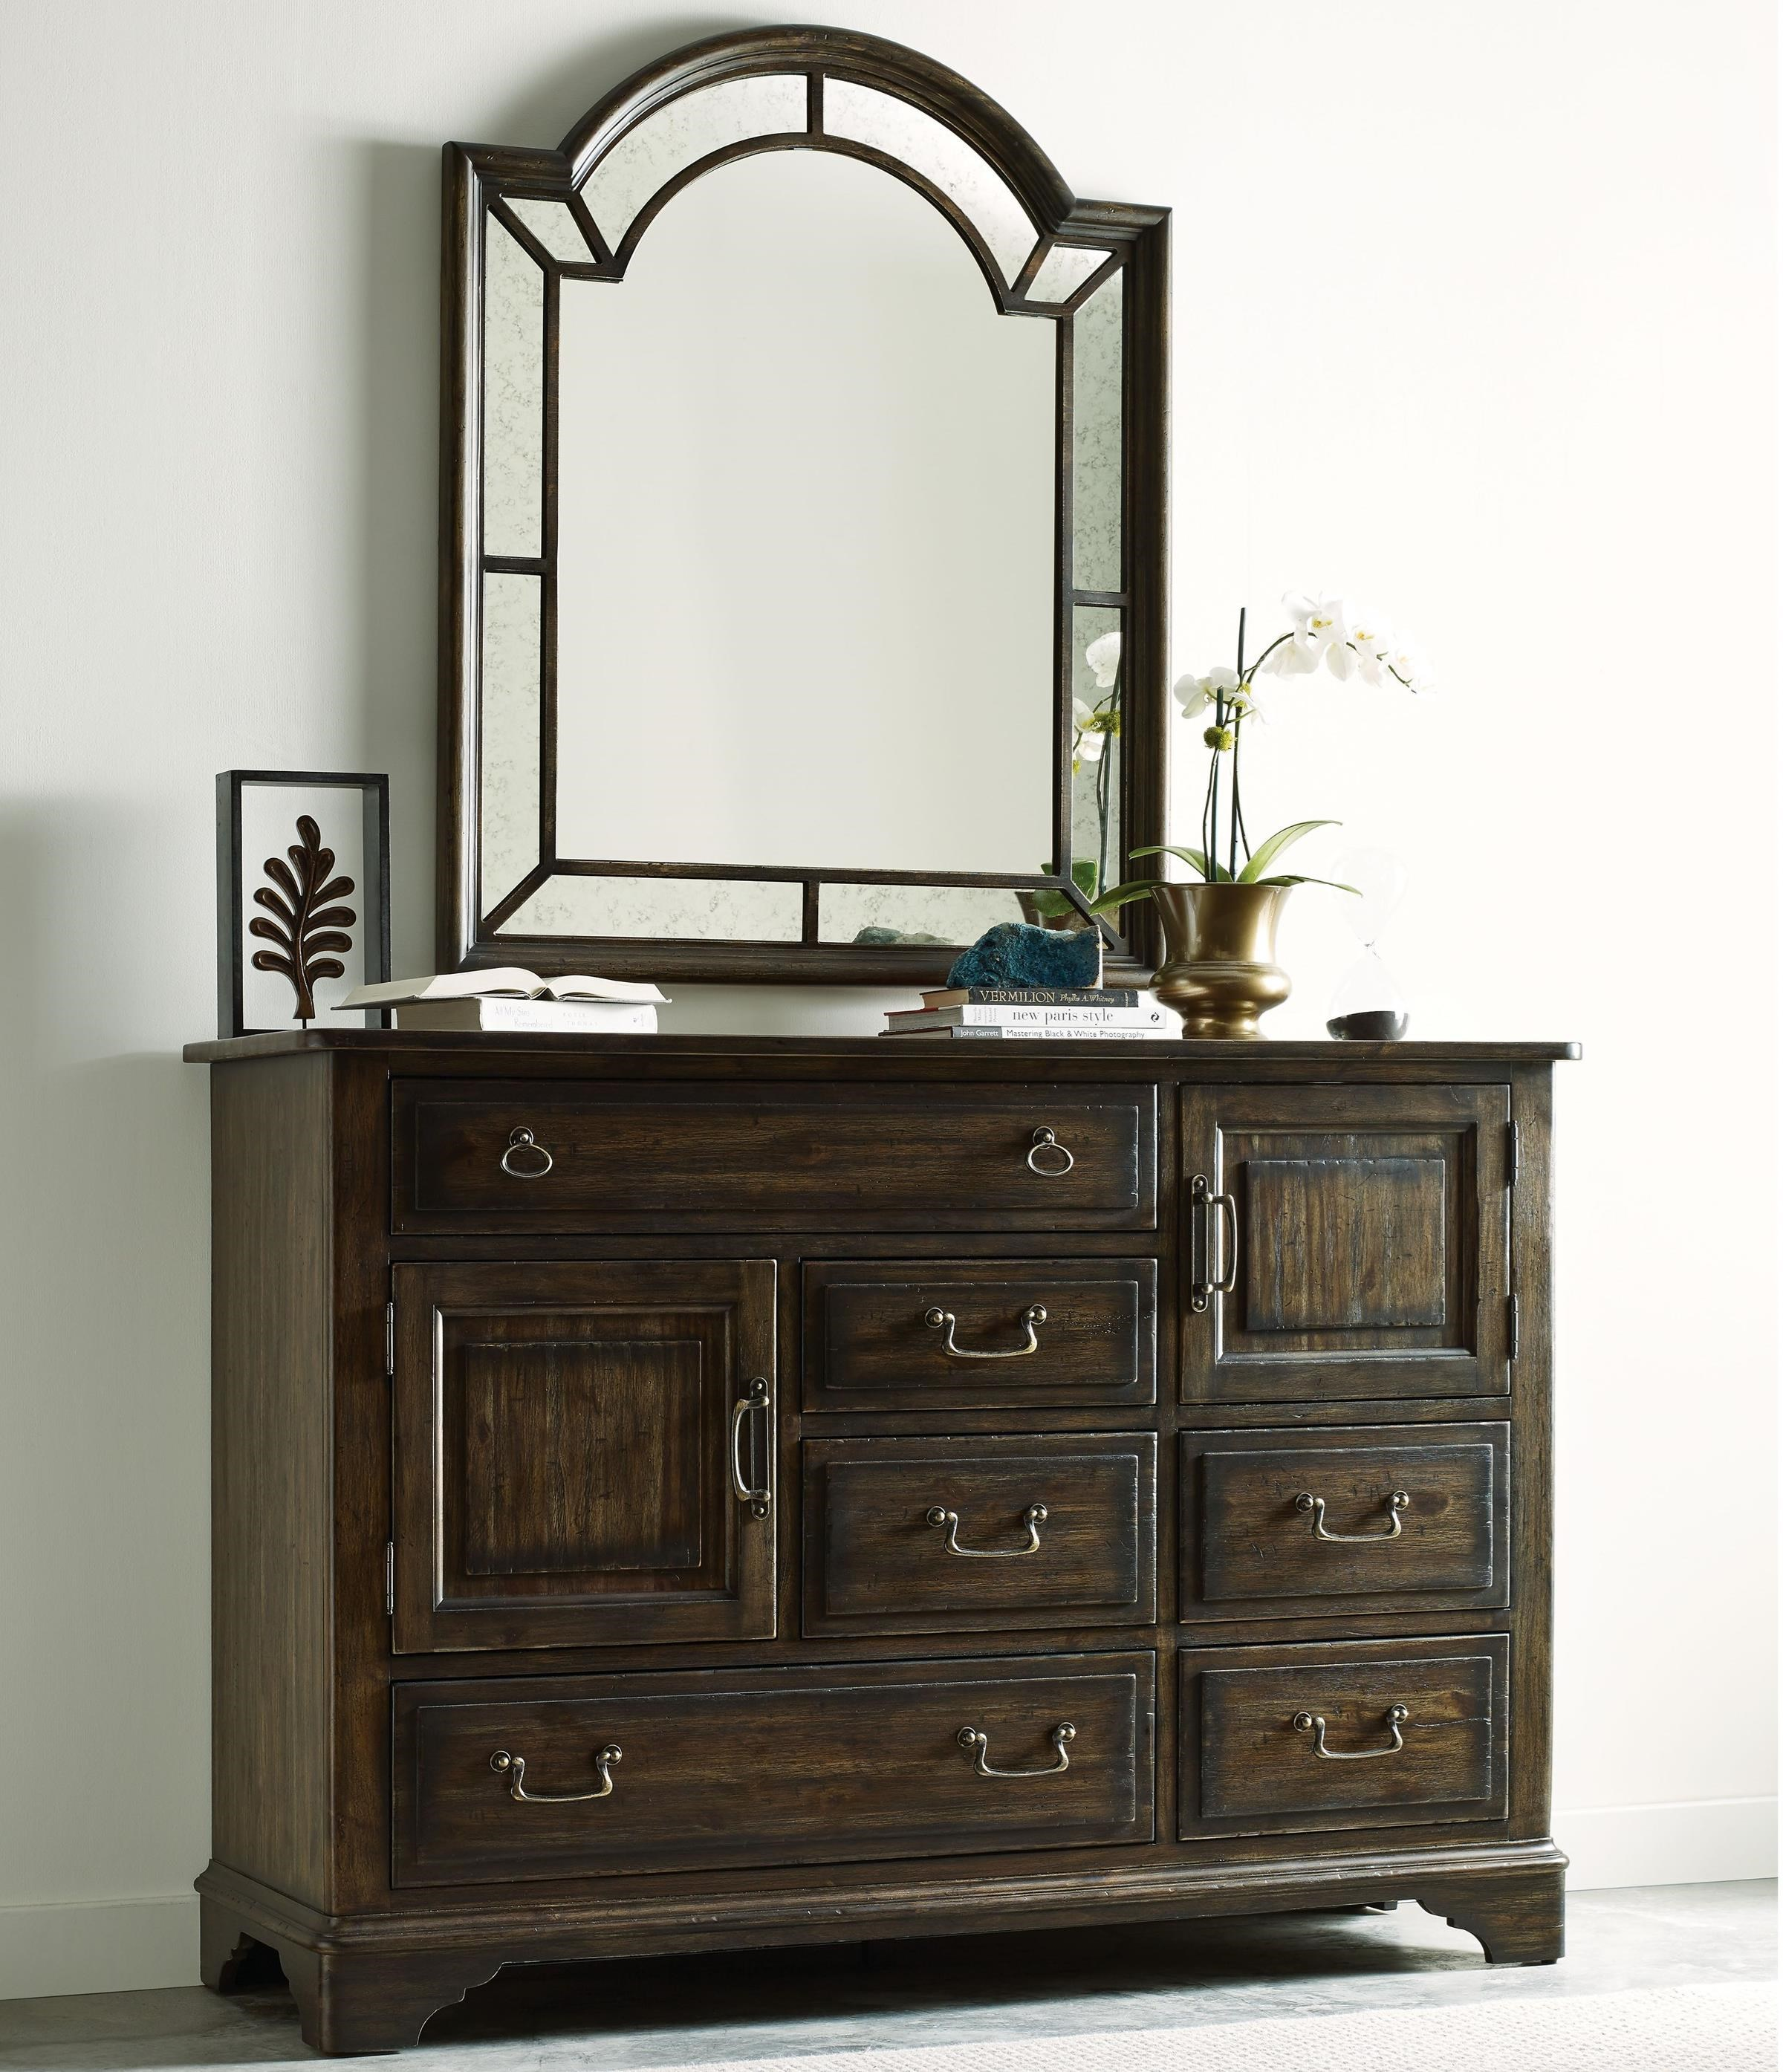 Kincaid Furniture Wildfire Dresser & Mirror Set - Item Number: 86-161+86-114